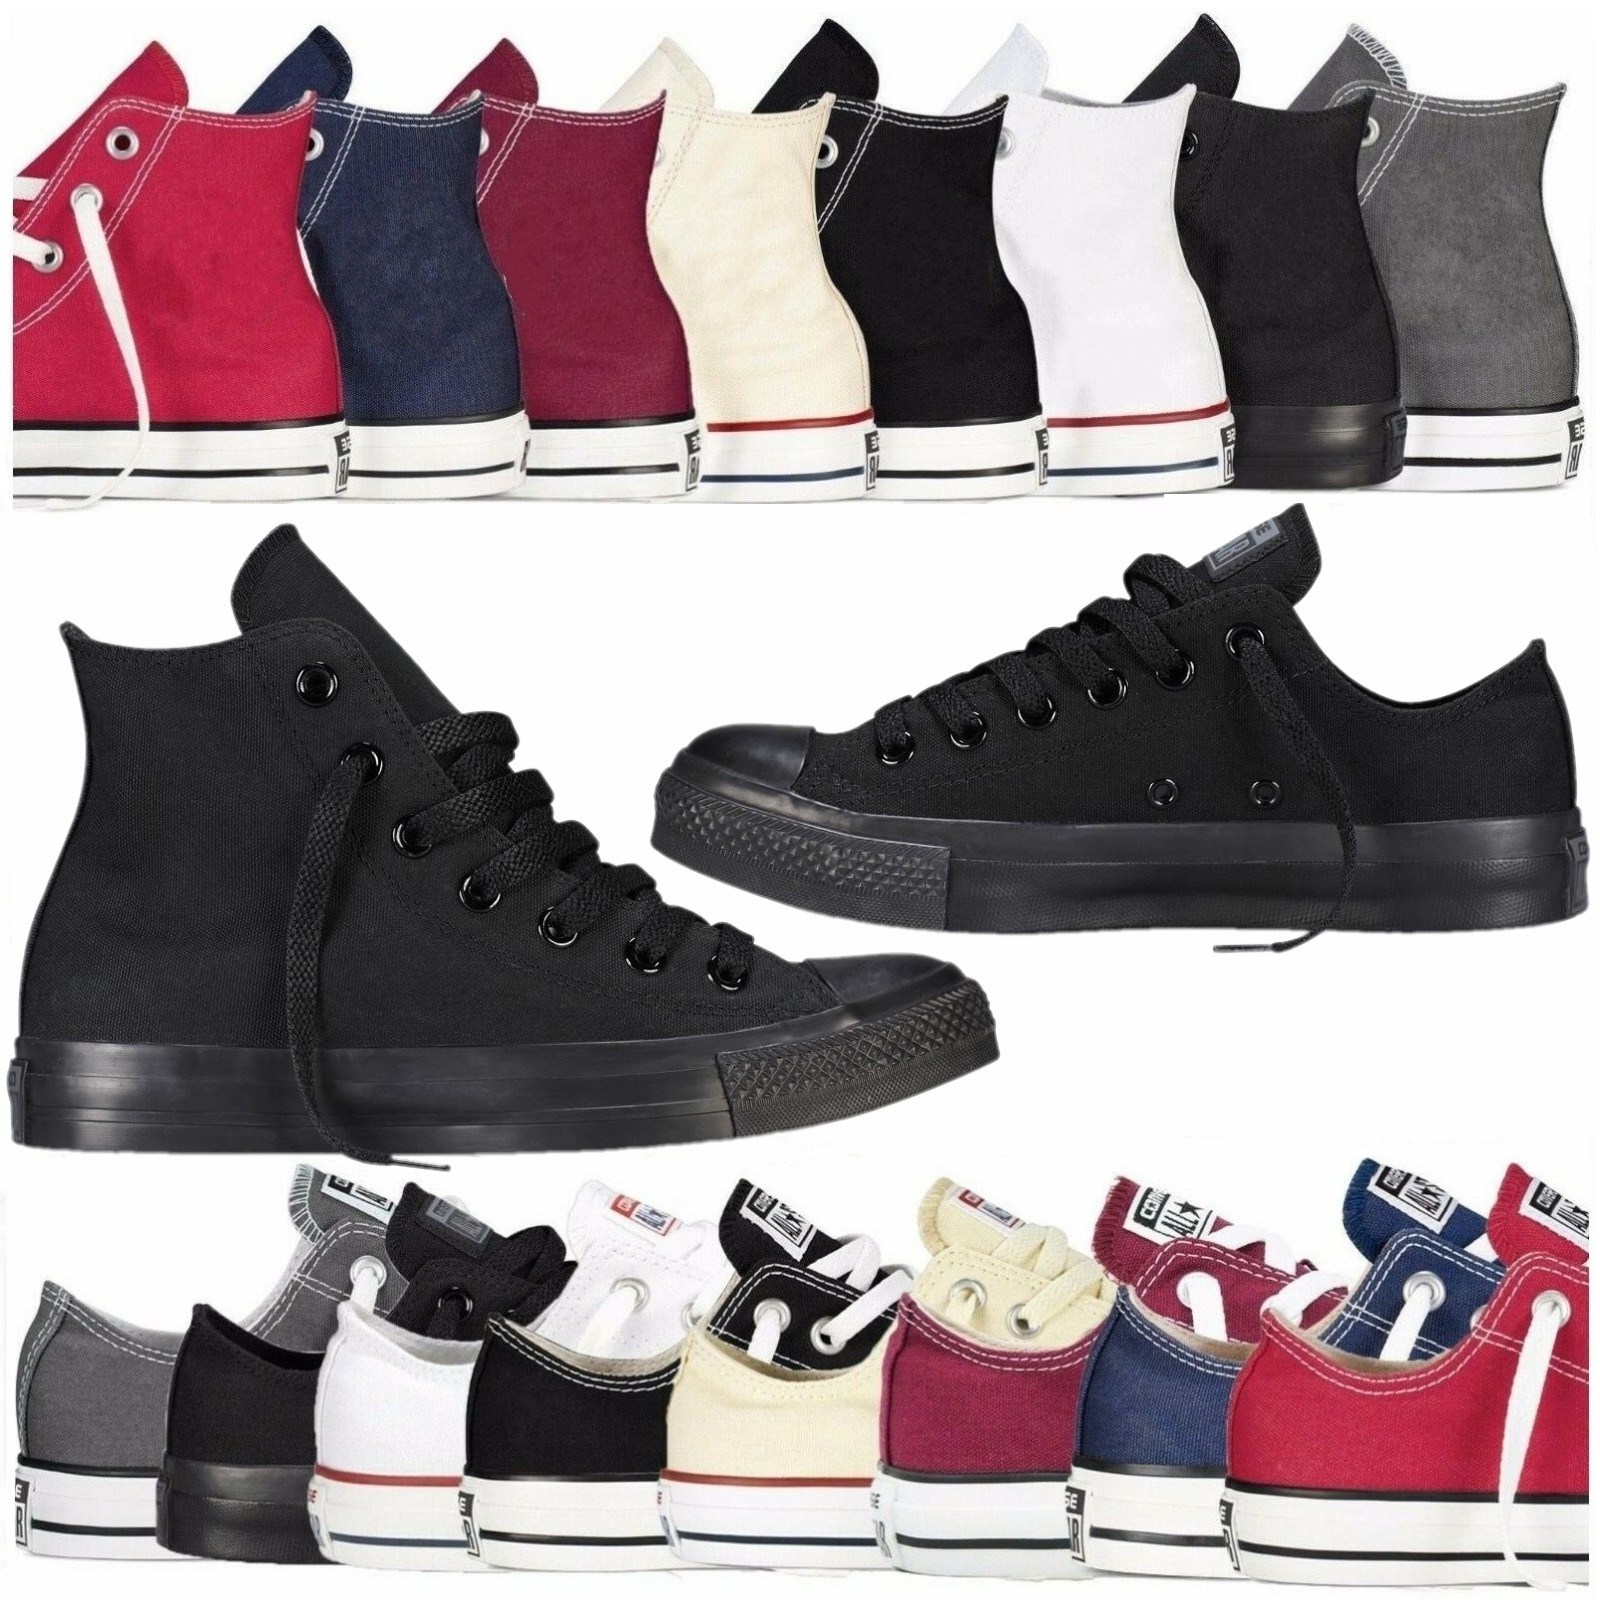 Unisex Men's & Women's Authentic Classic Allstar Designer Chuck-Taylor-Ox Low High Top Canvas Shoes Vulcanize Athletic Sneakers